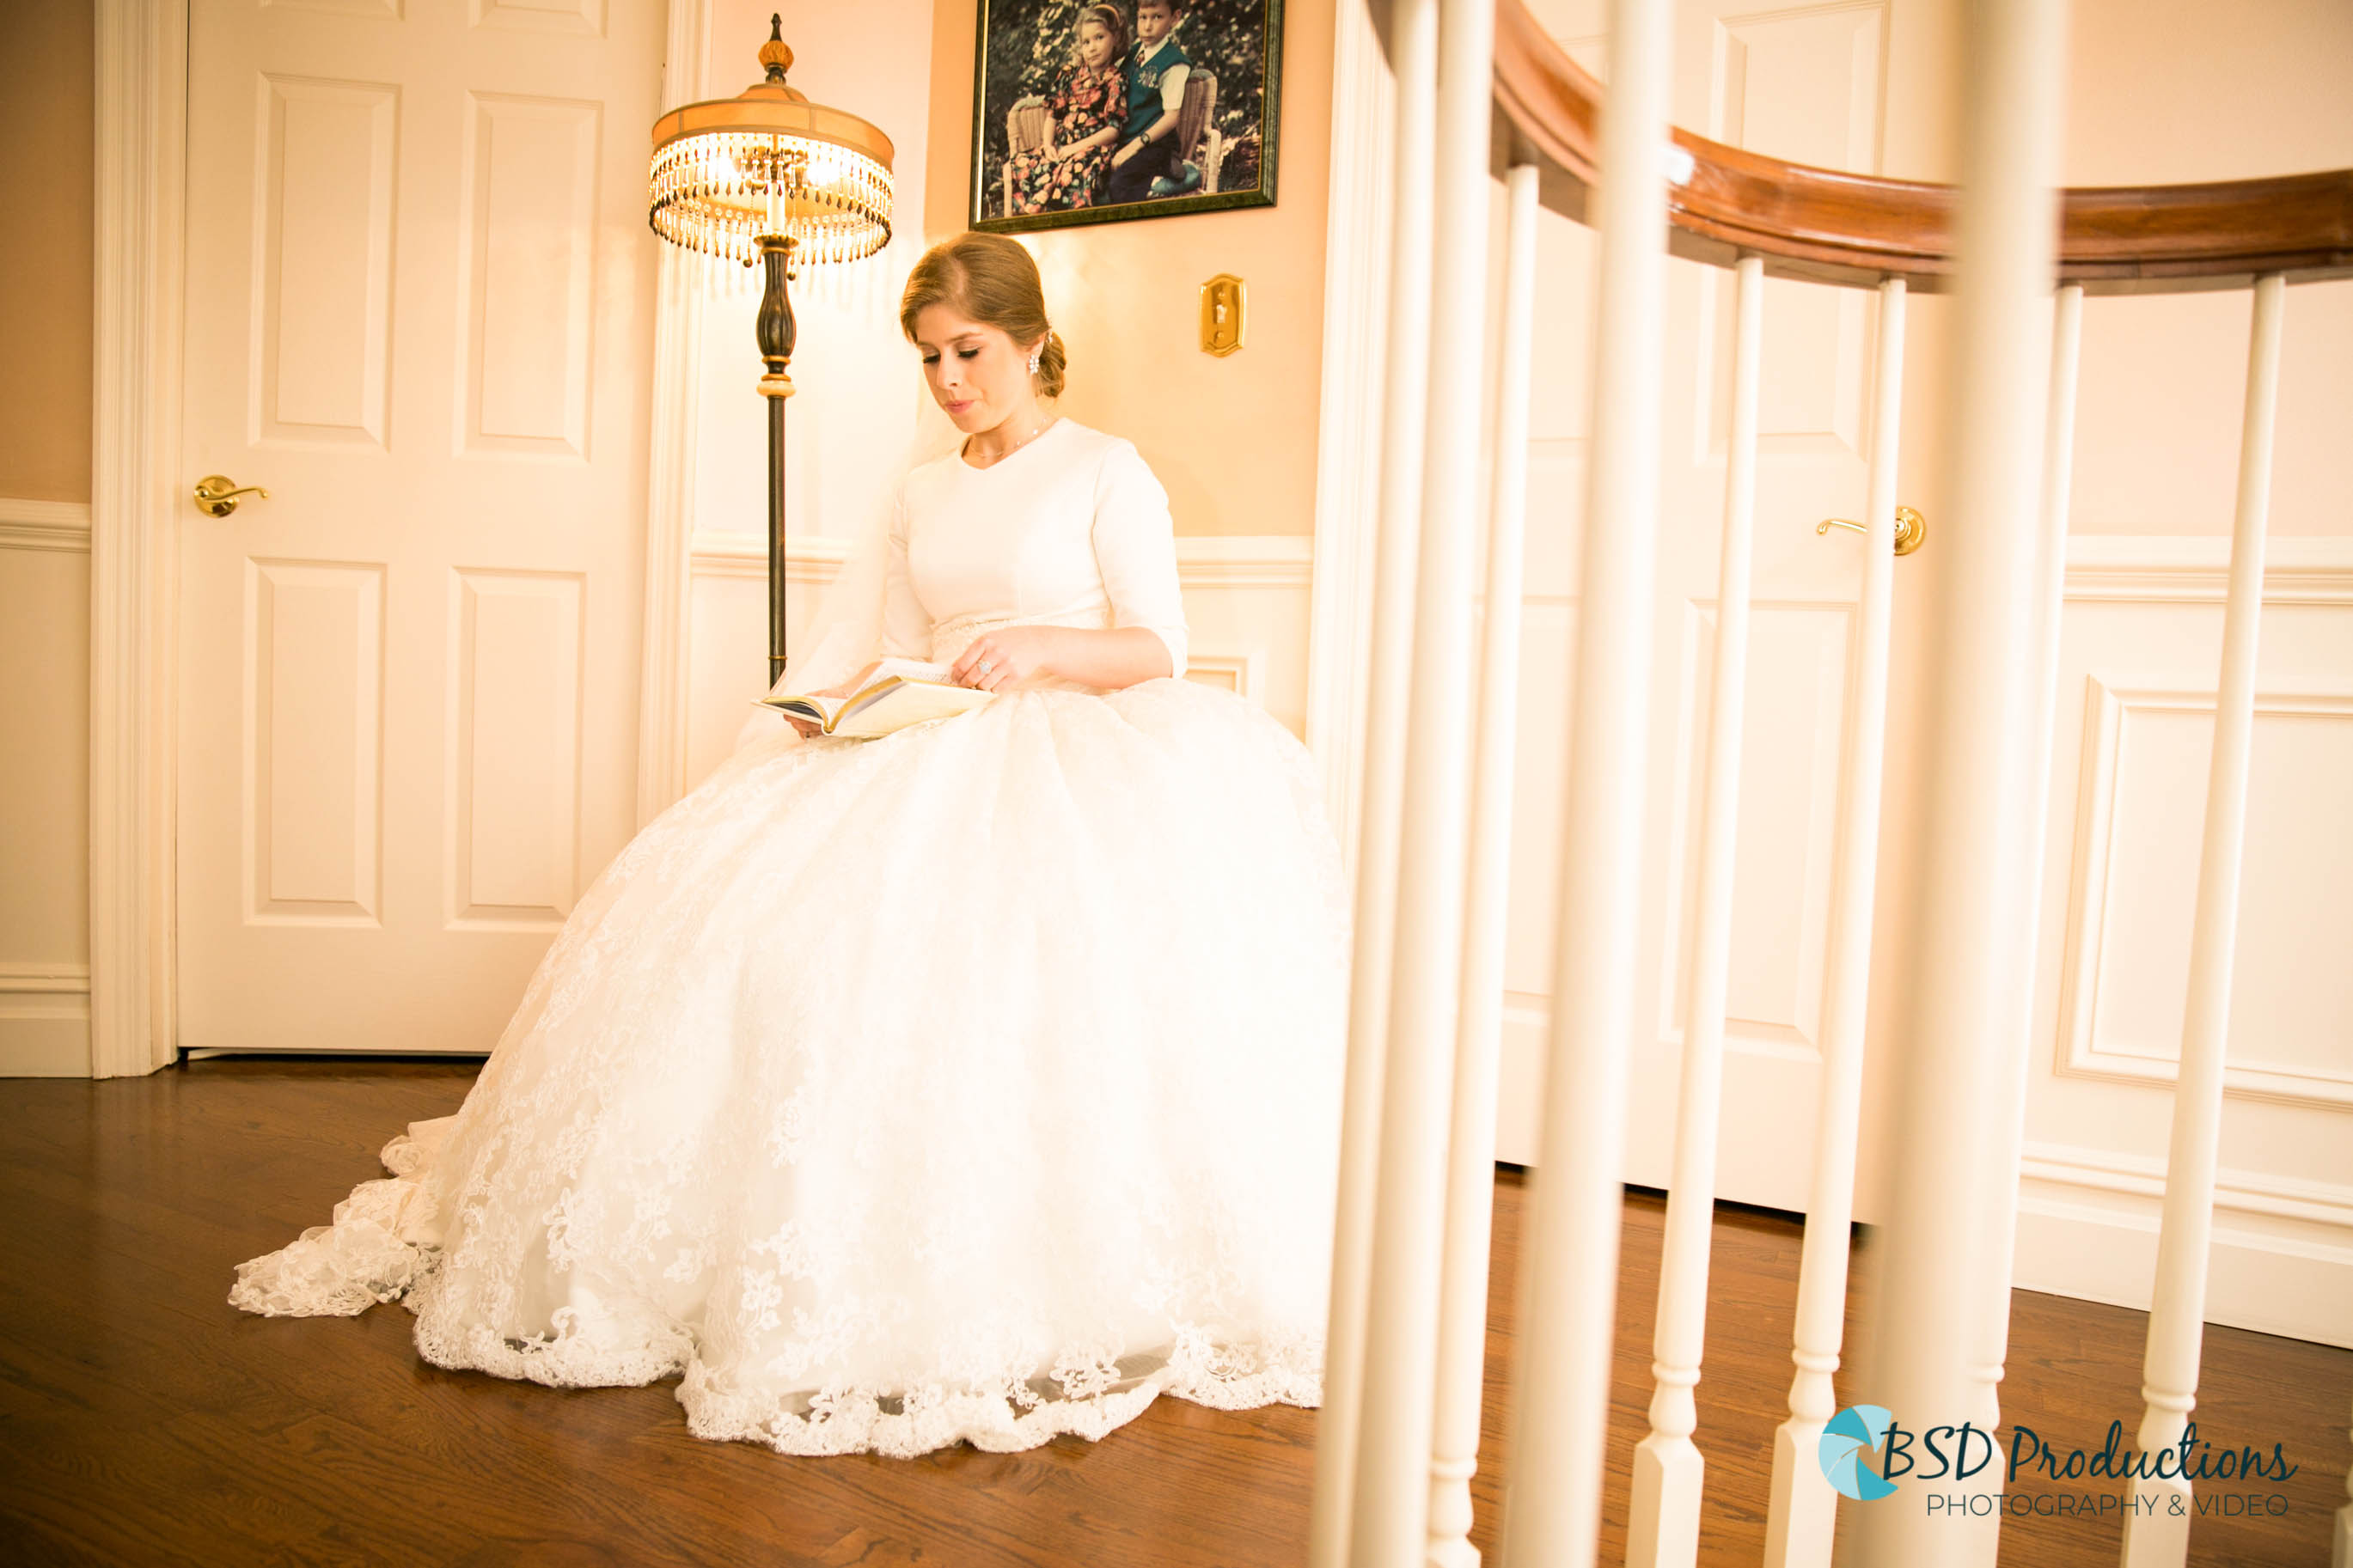 UH5A6460 Wedding – BSD Productions Photography